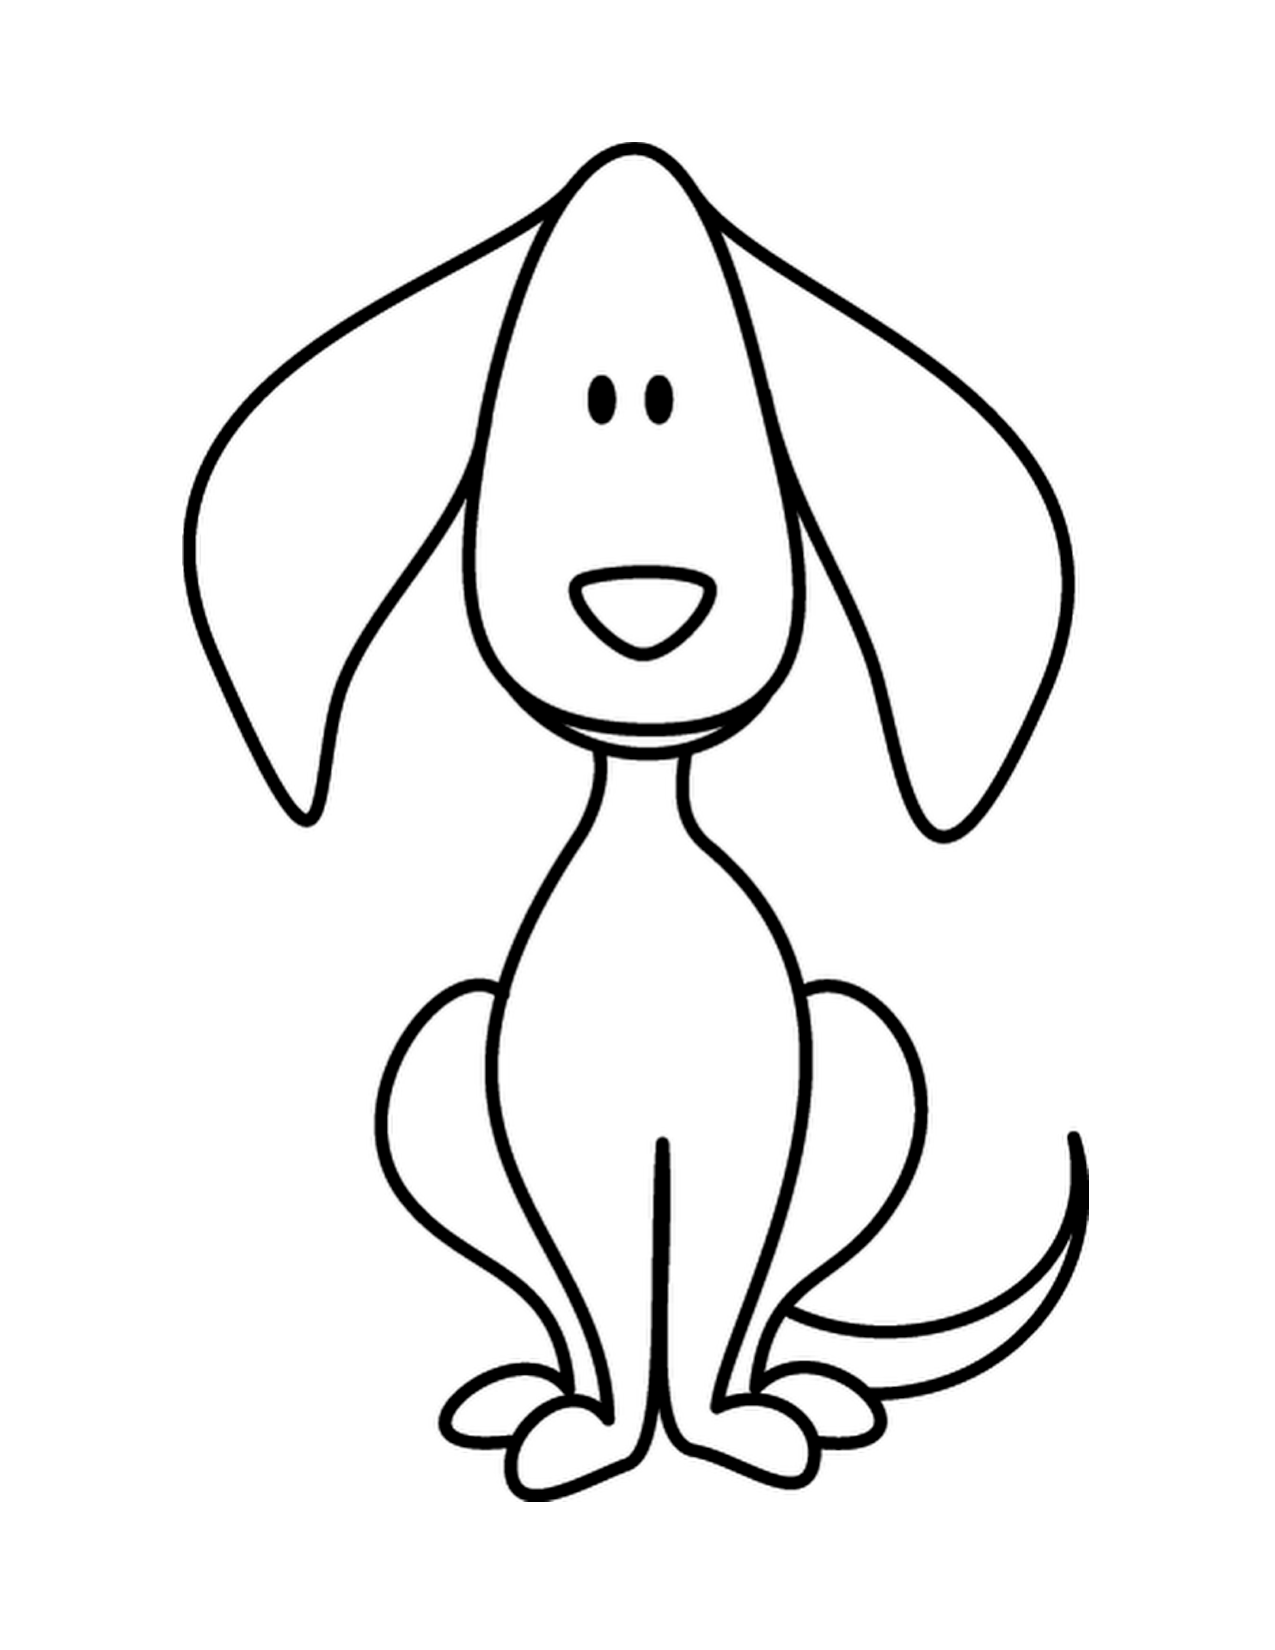 Line Drawing For Kids : Simple line drawings for kids clipart best